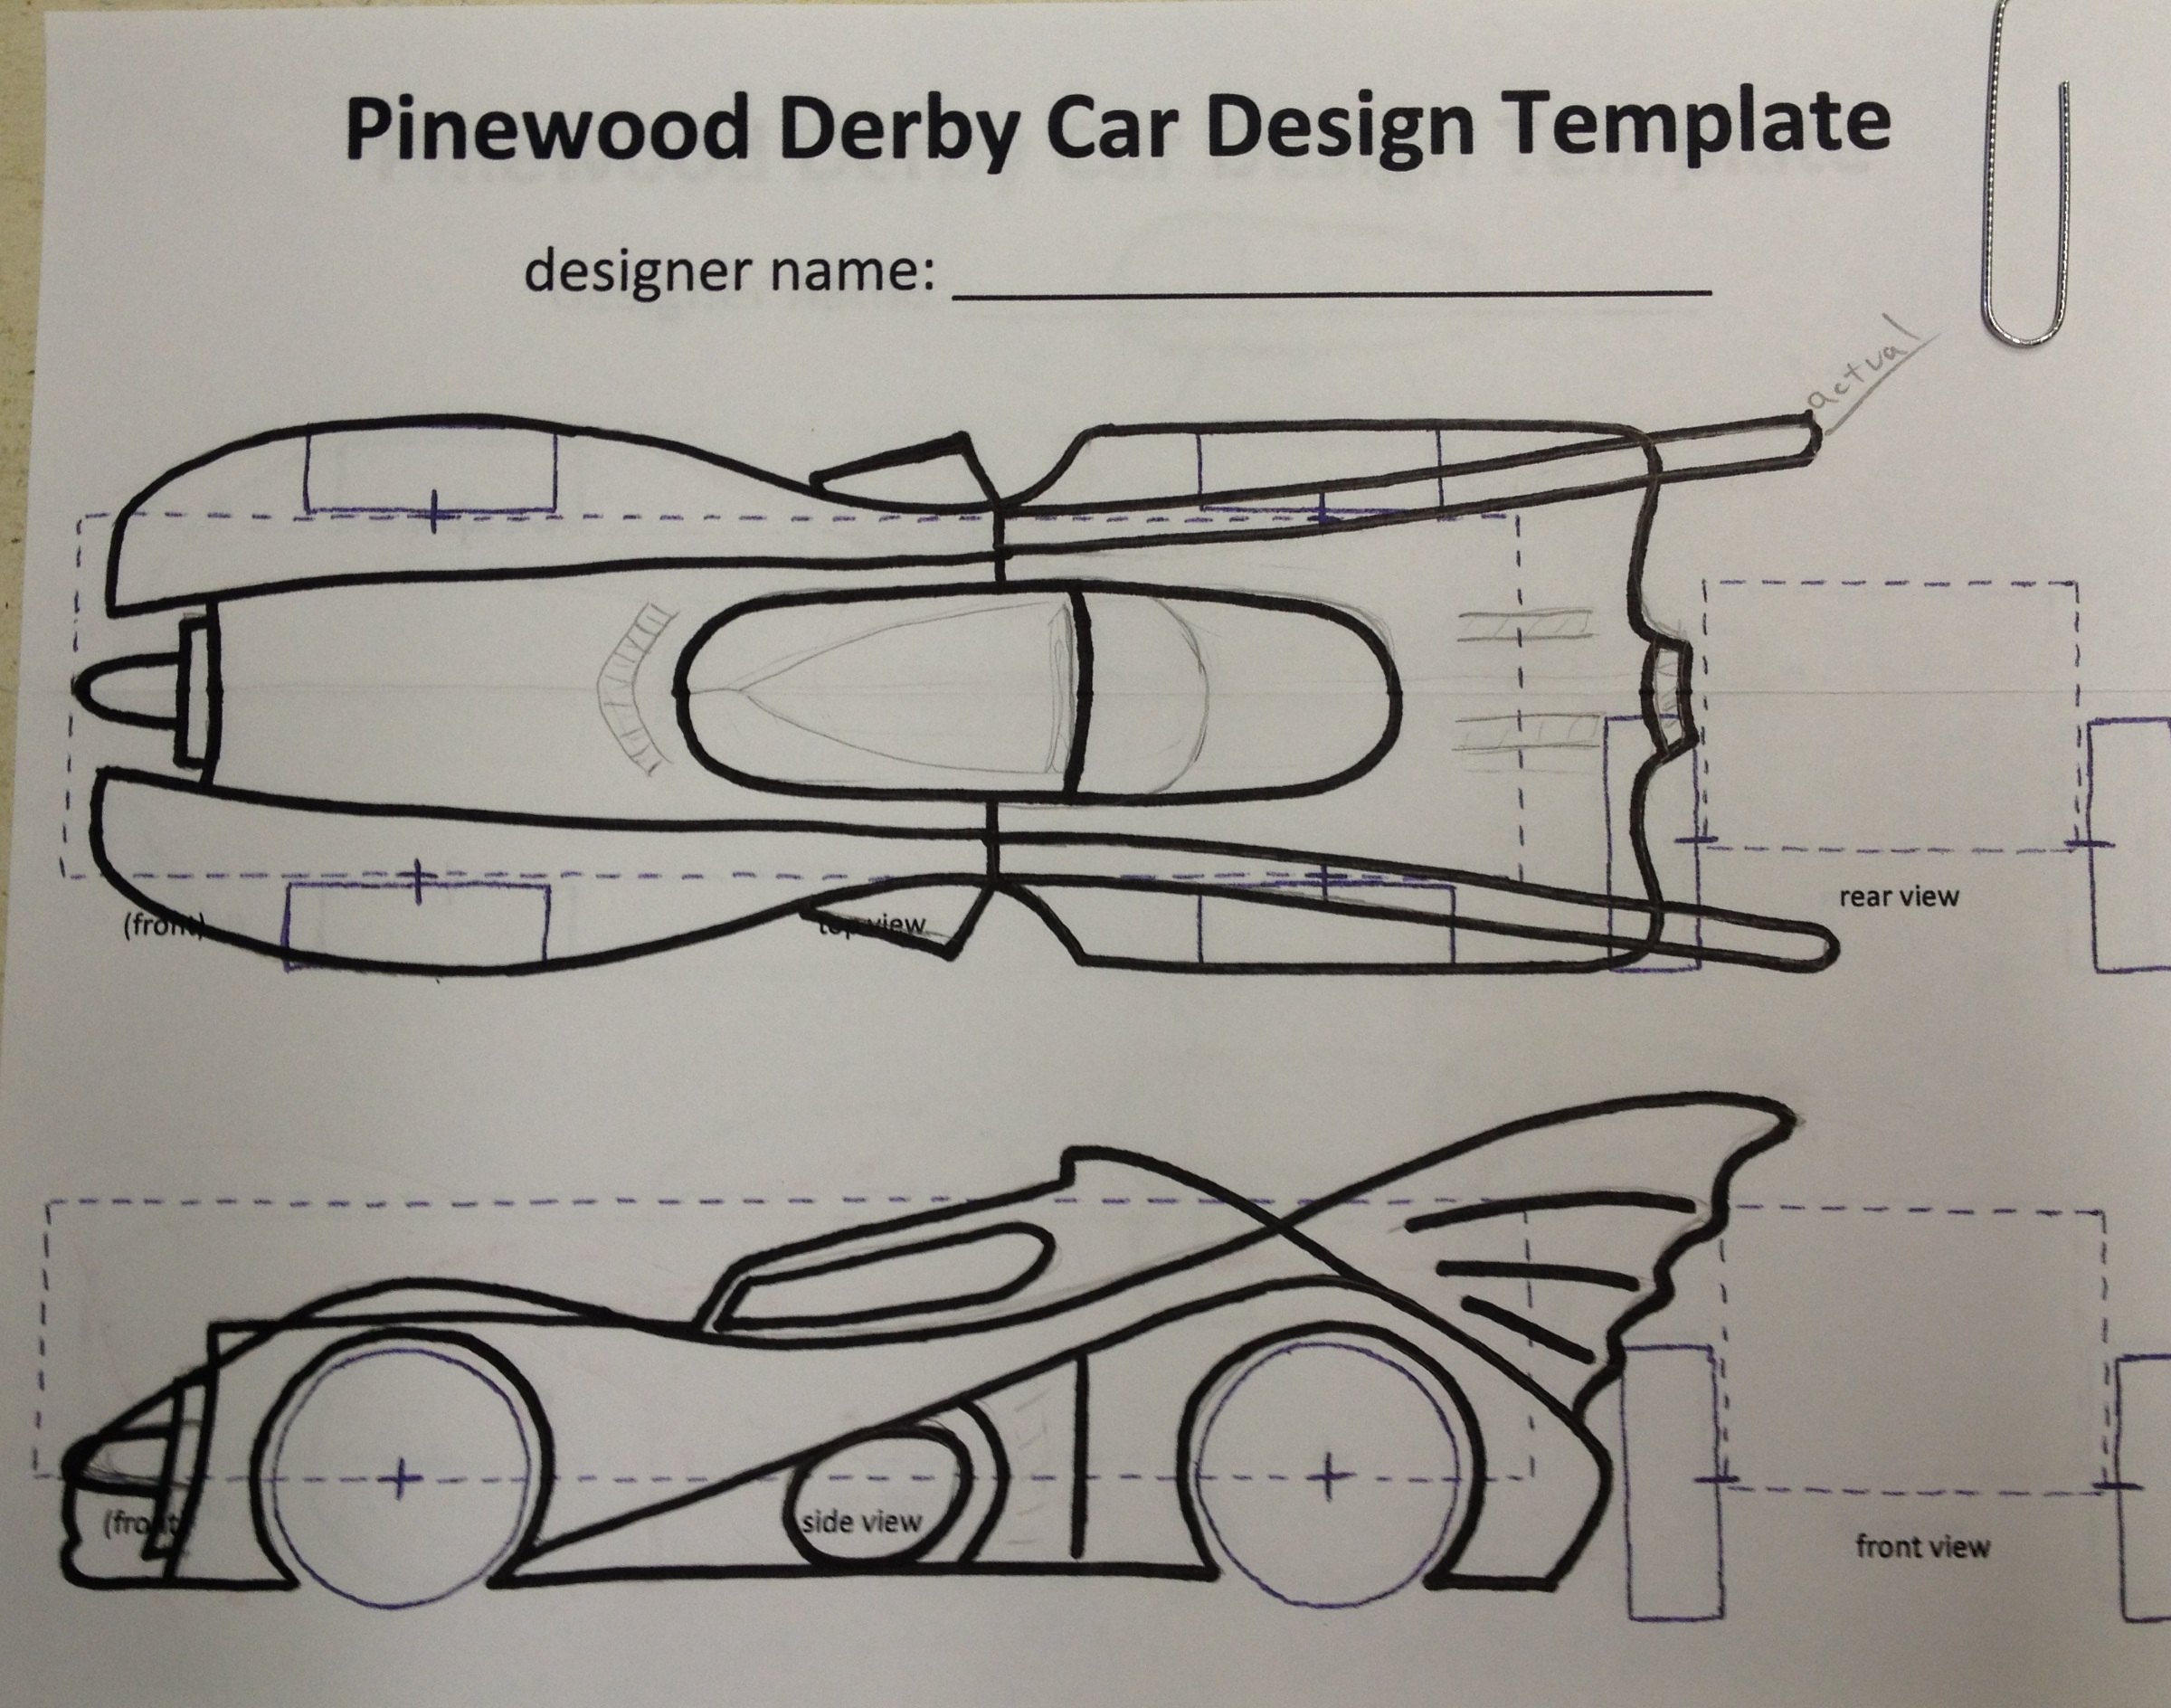 How to build an awesome Batmobile Pinewood Derby car | Kurt's Blog